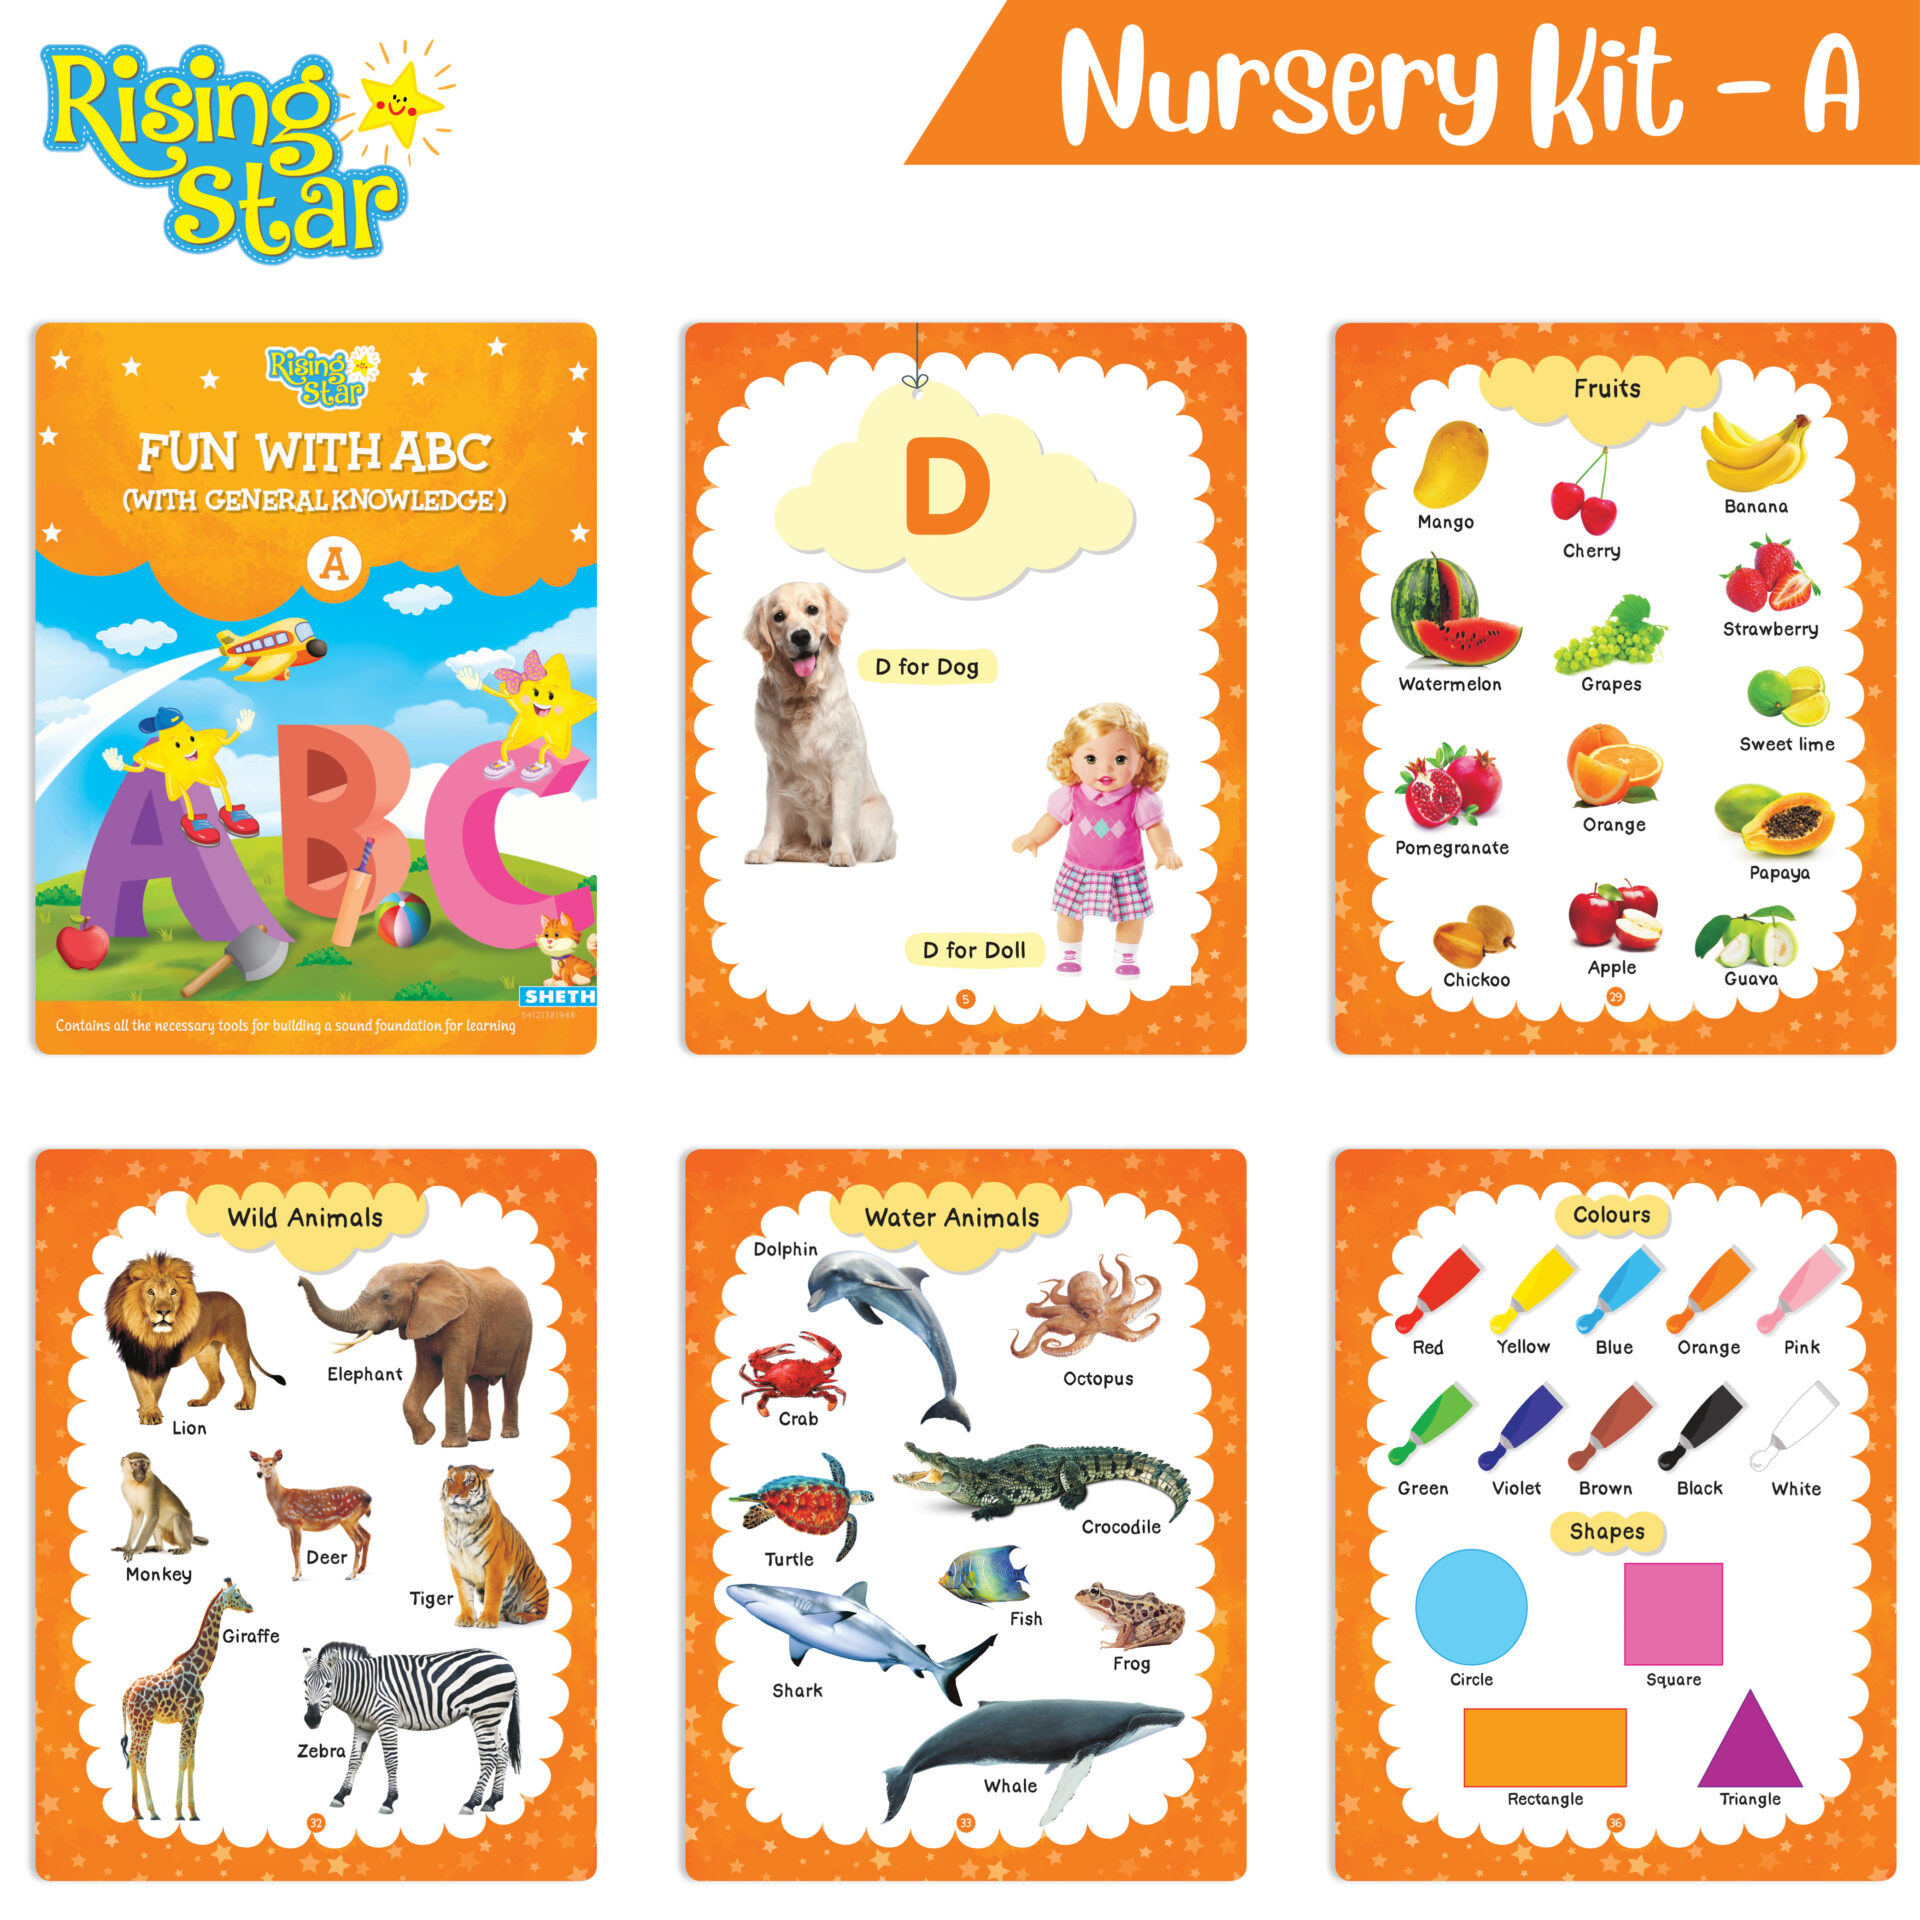 Rising Star Preschool Nurery Kit A 03 Fun with ABC With General Knowledge A 01